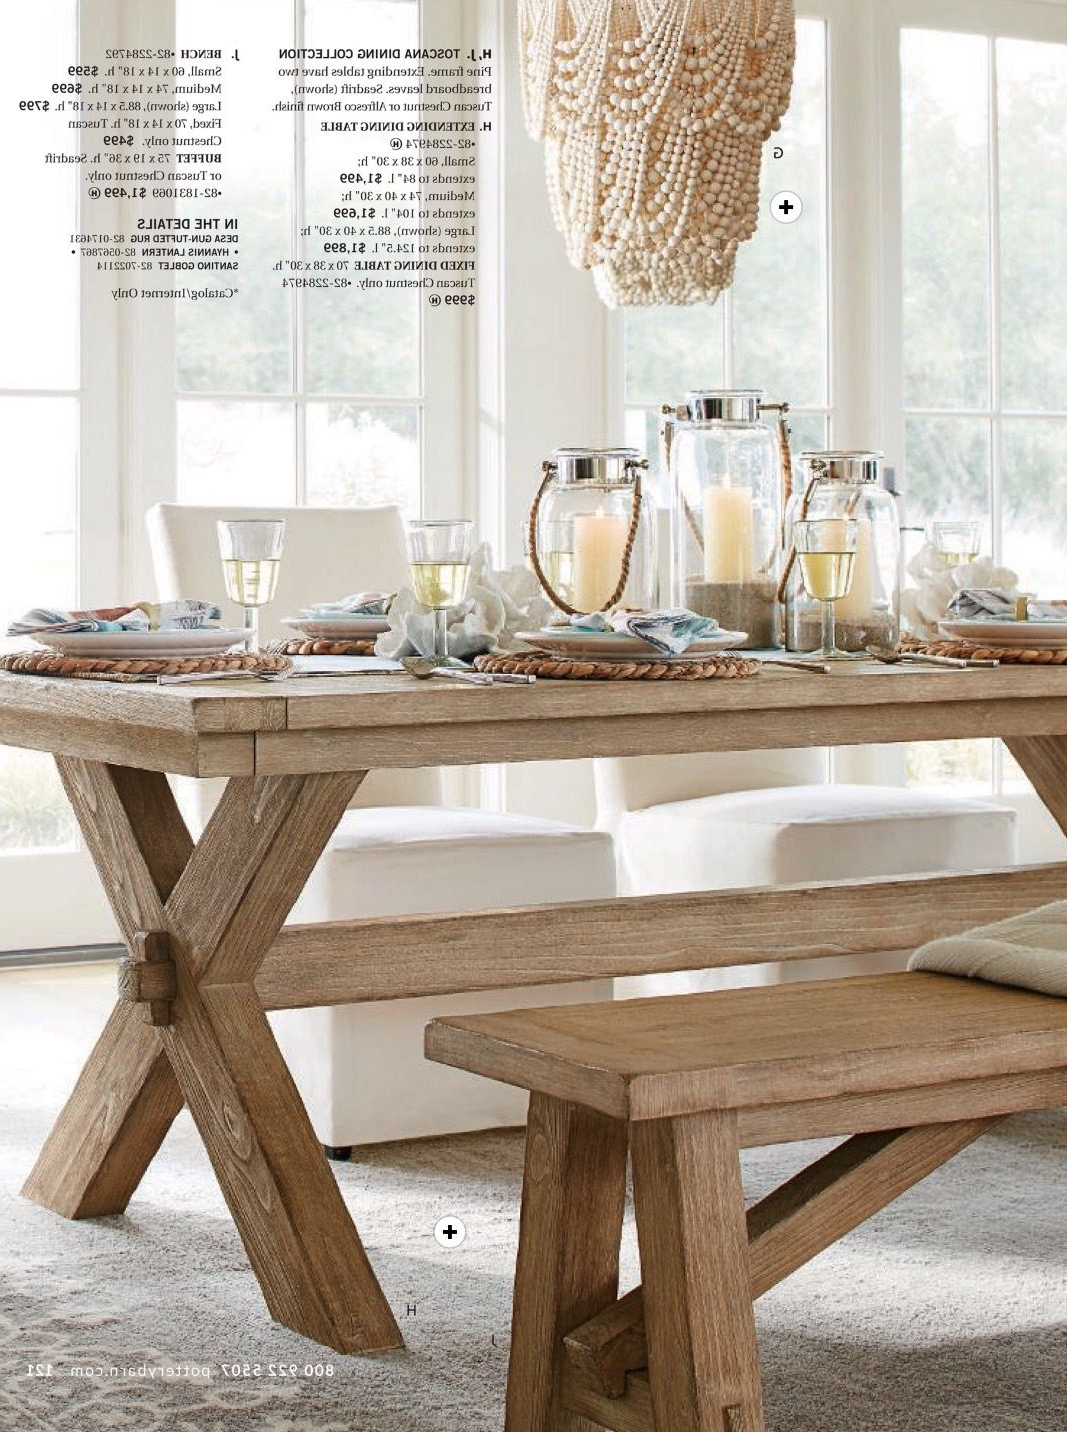 Well Liked Toscano Dining Table And Bench In Seadrift, Amelia Wood Bead With Seadrift Benchwright Extending Dining Tables (View 5 of 25)